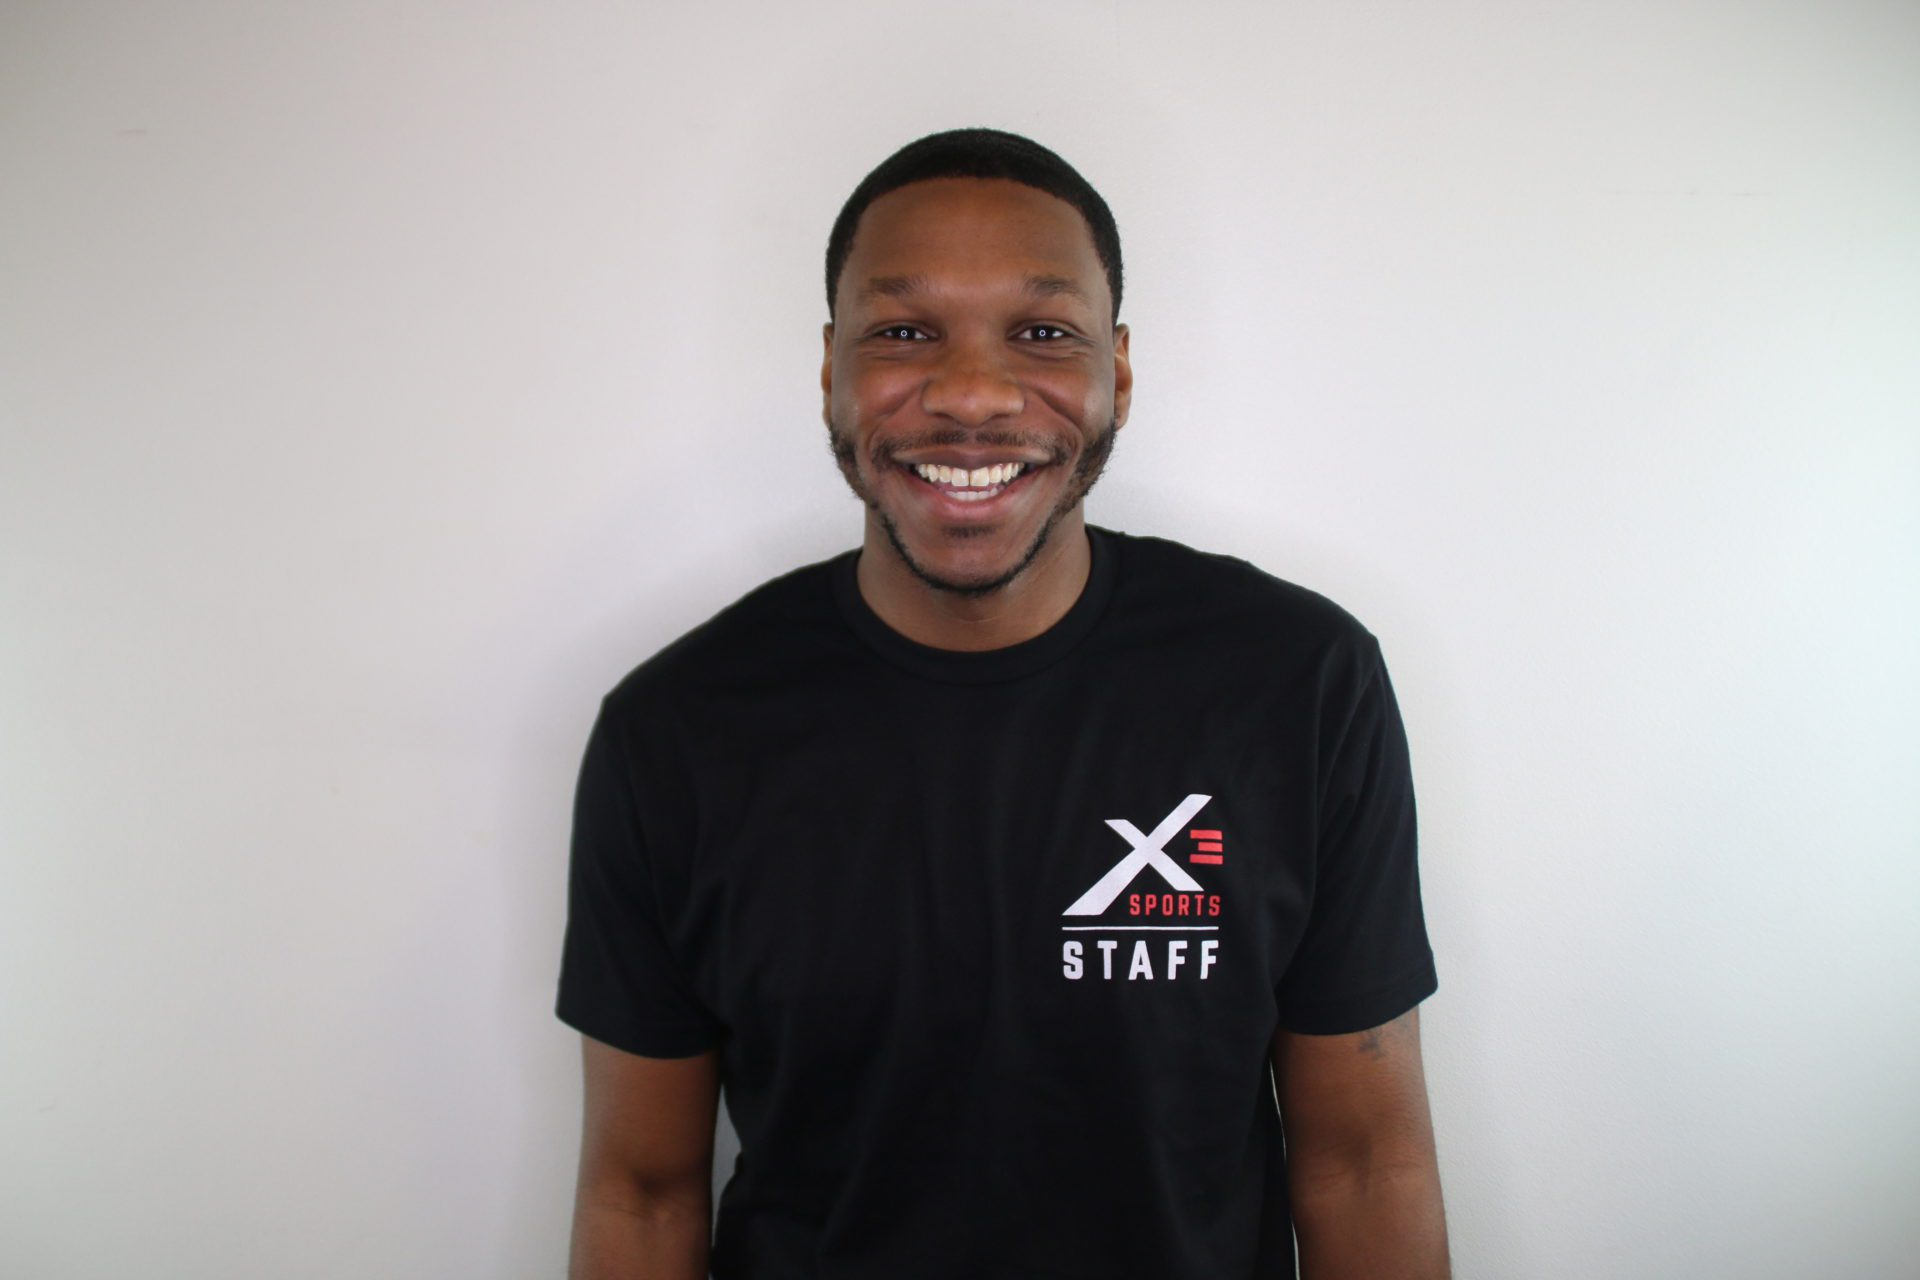 Dakarai Campbell | X3 Sports Employee | X3 Sports